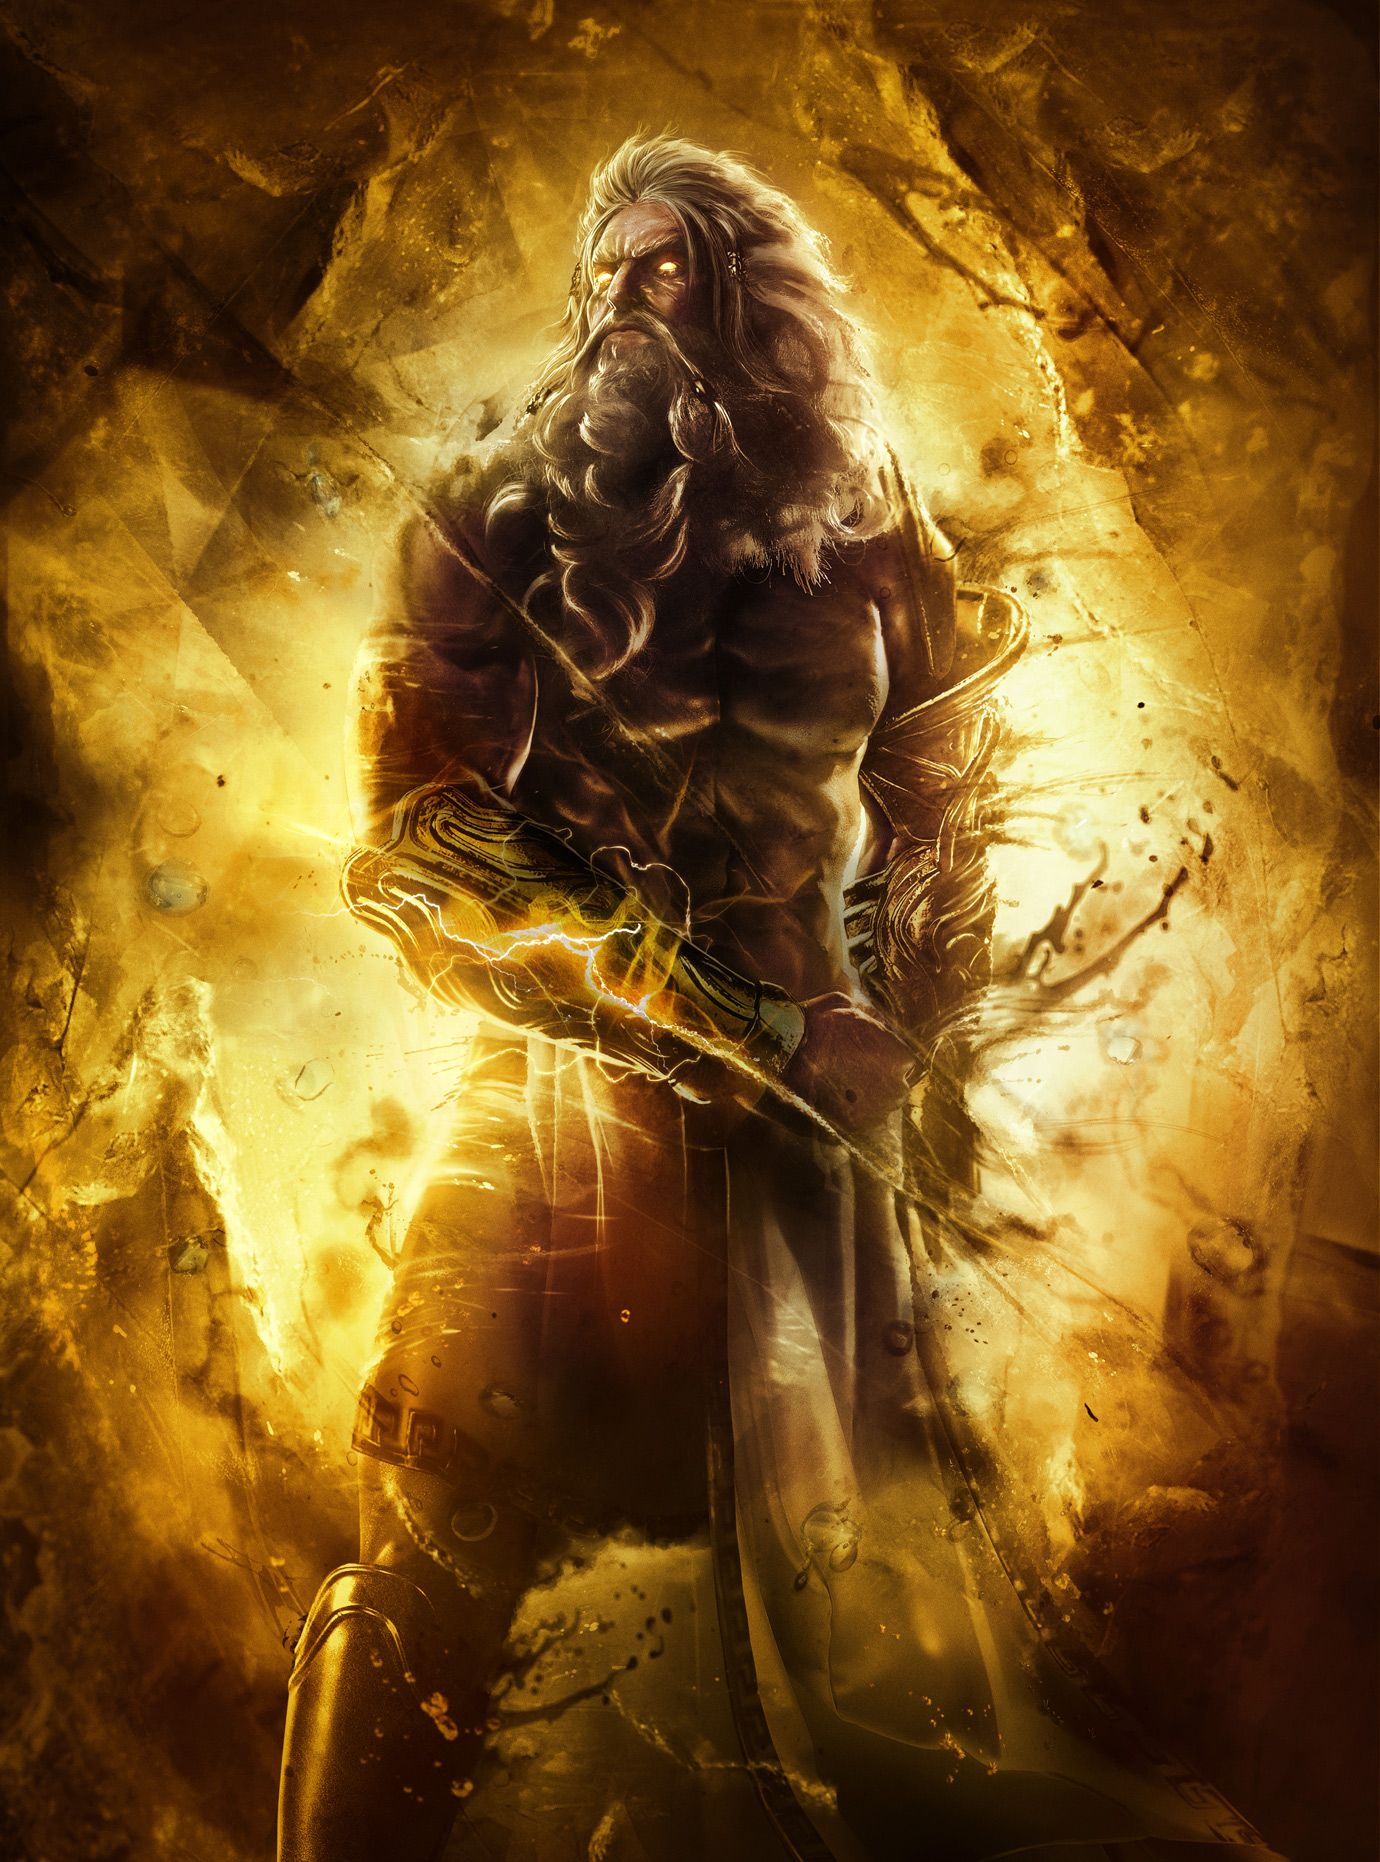 Zeus wallpaper god of war hd wallpapers available in different zeus wallpaper god of war hd wallpapers available in different resolution and sizes for our voltagebd Image collections